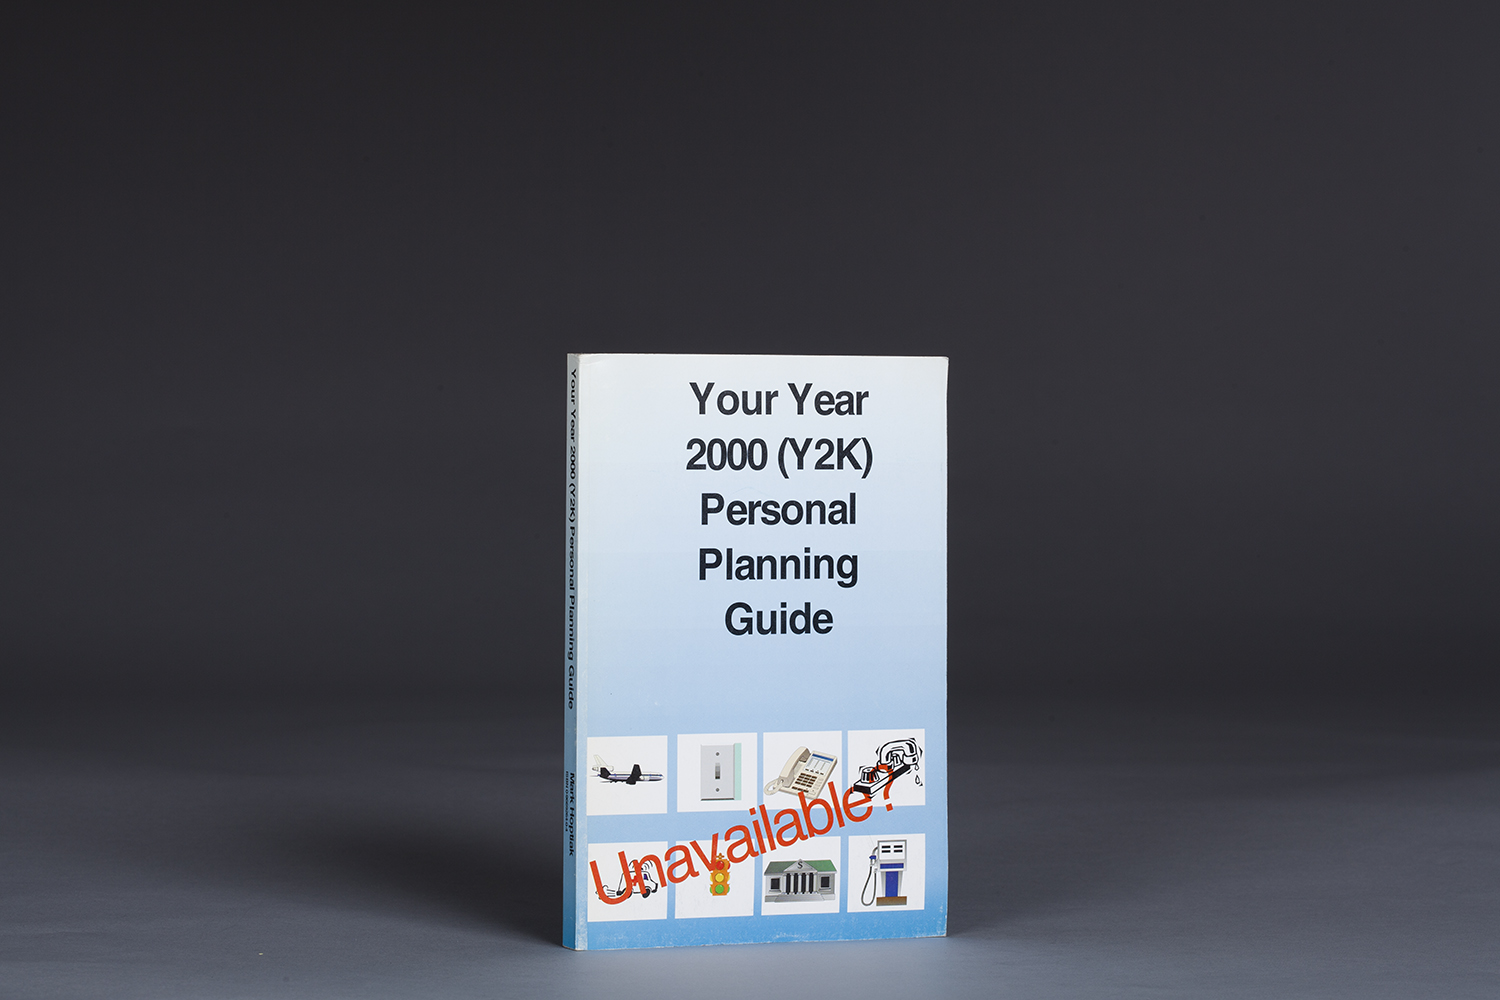 Your Year 2000 (Y2K) Personal Planning Guide - 9831 Cover.jpg